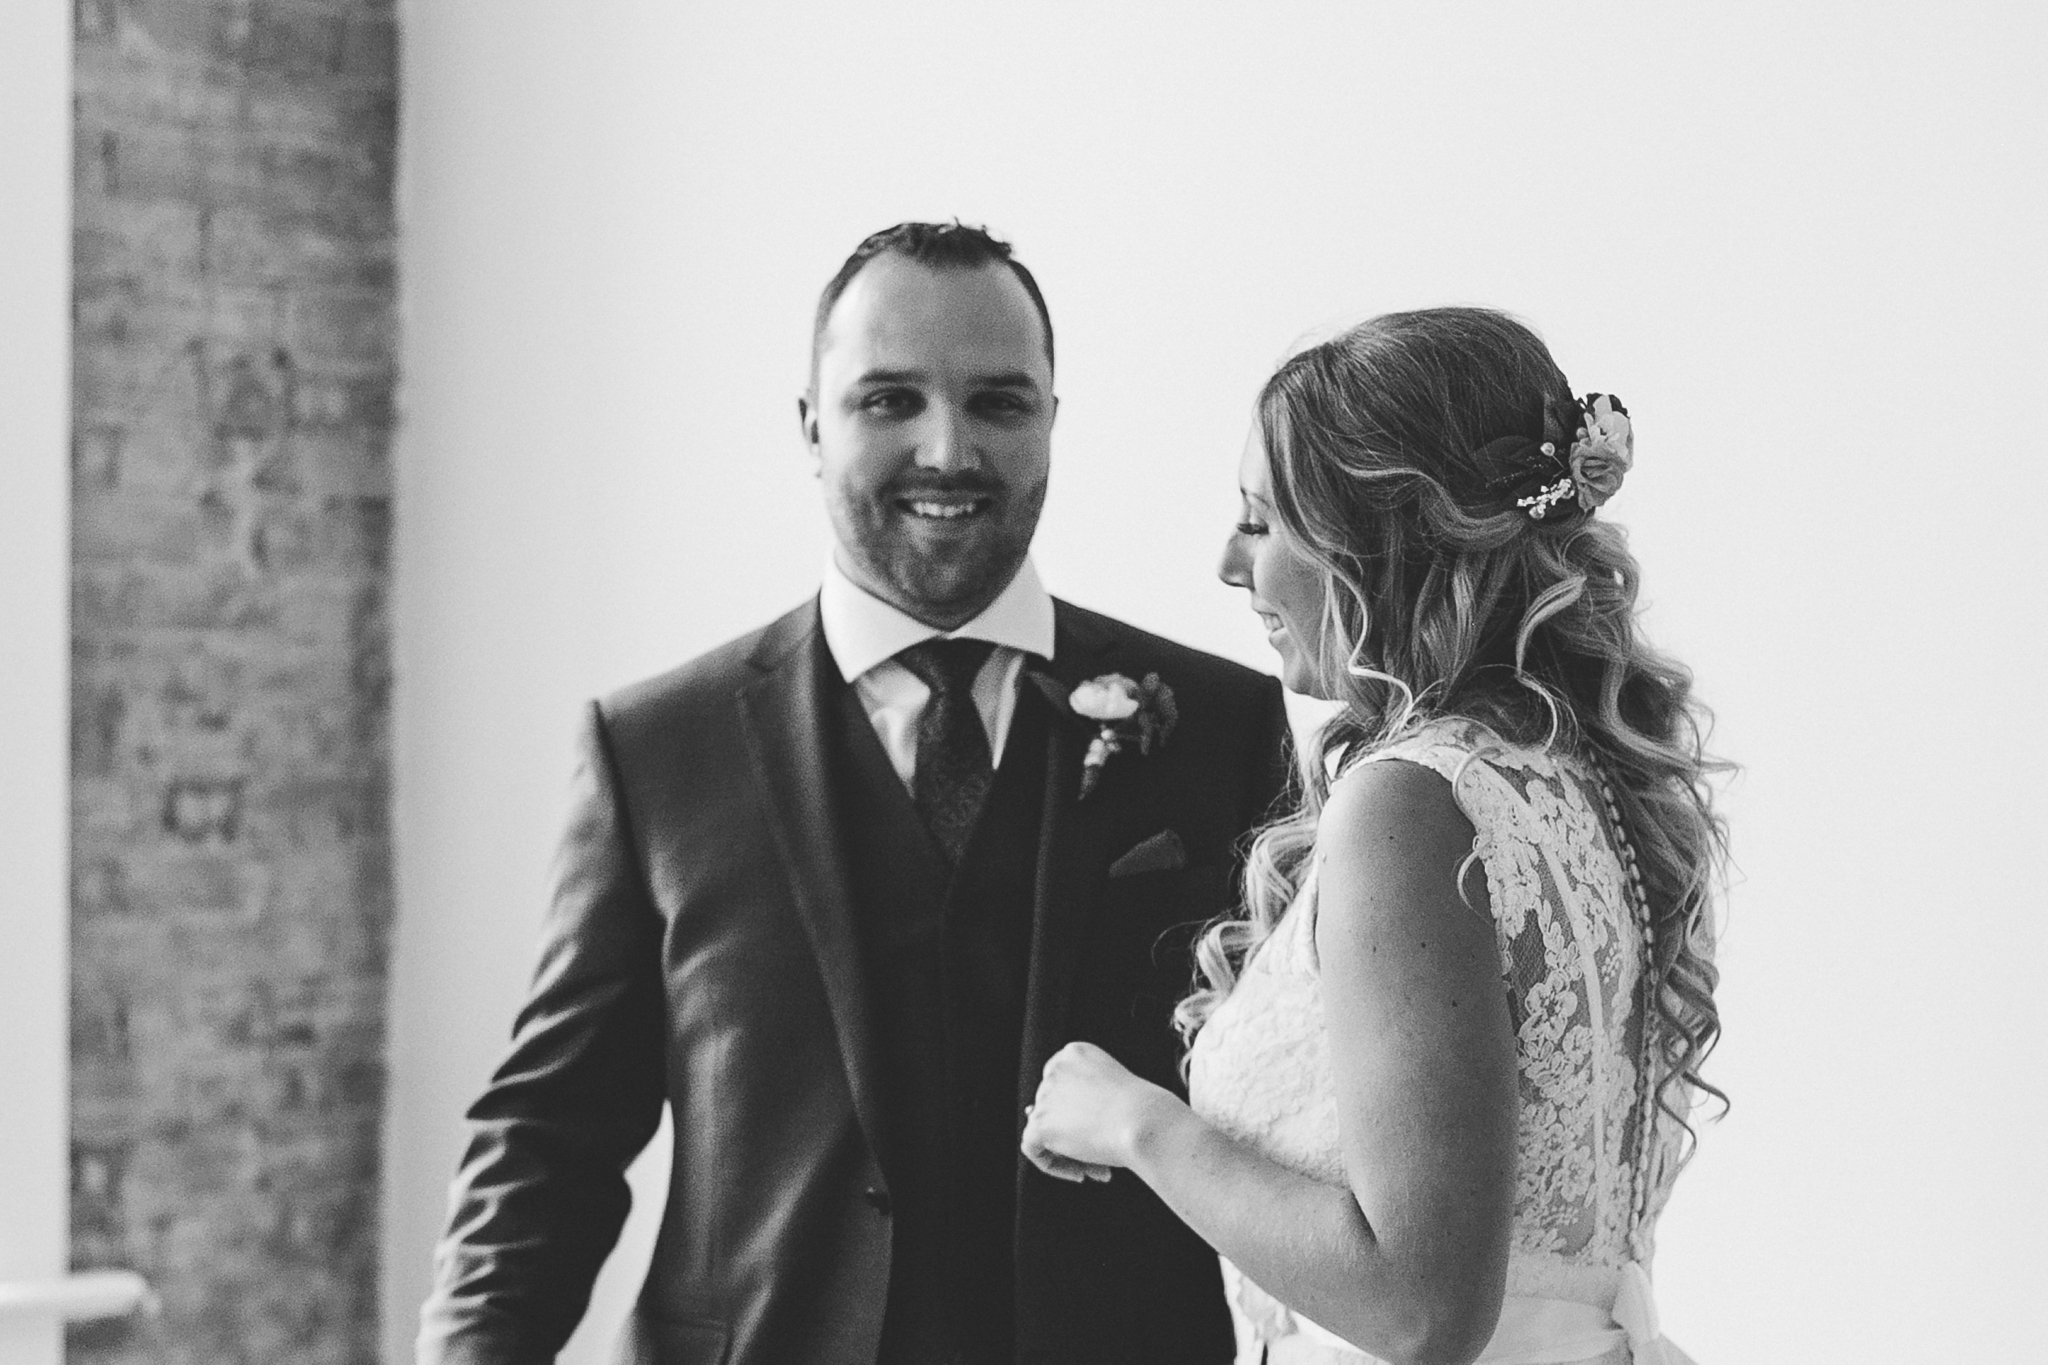 lethbridge-photographer-love-and-be-loved-photography-designed-to-dwell-wedding-katie-kelly-photo-image-picture-16.jpg